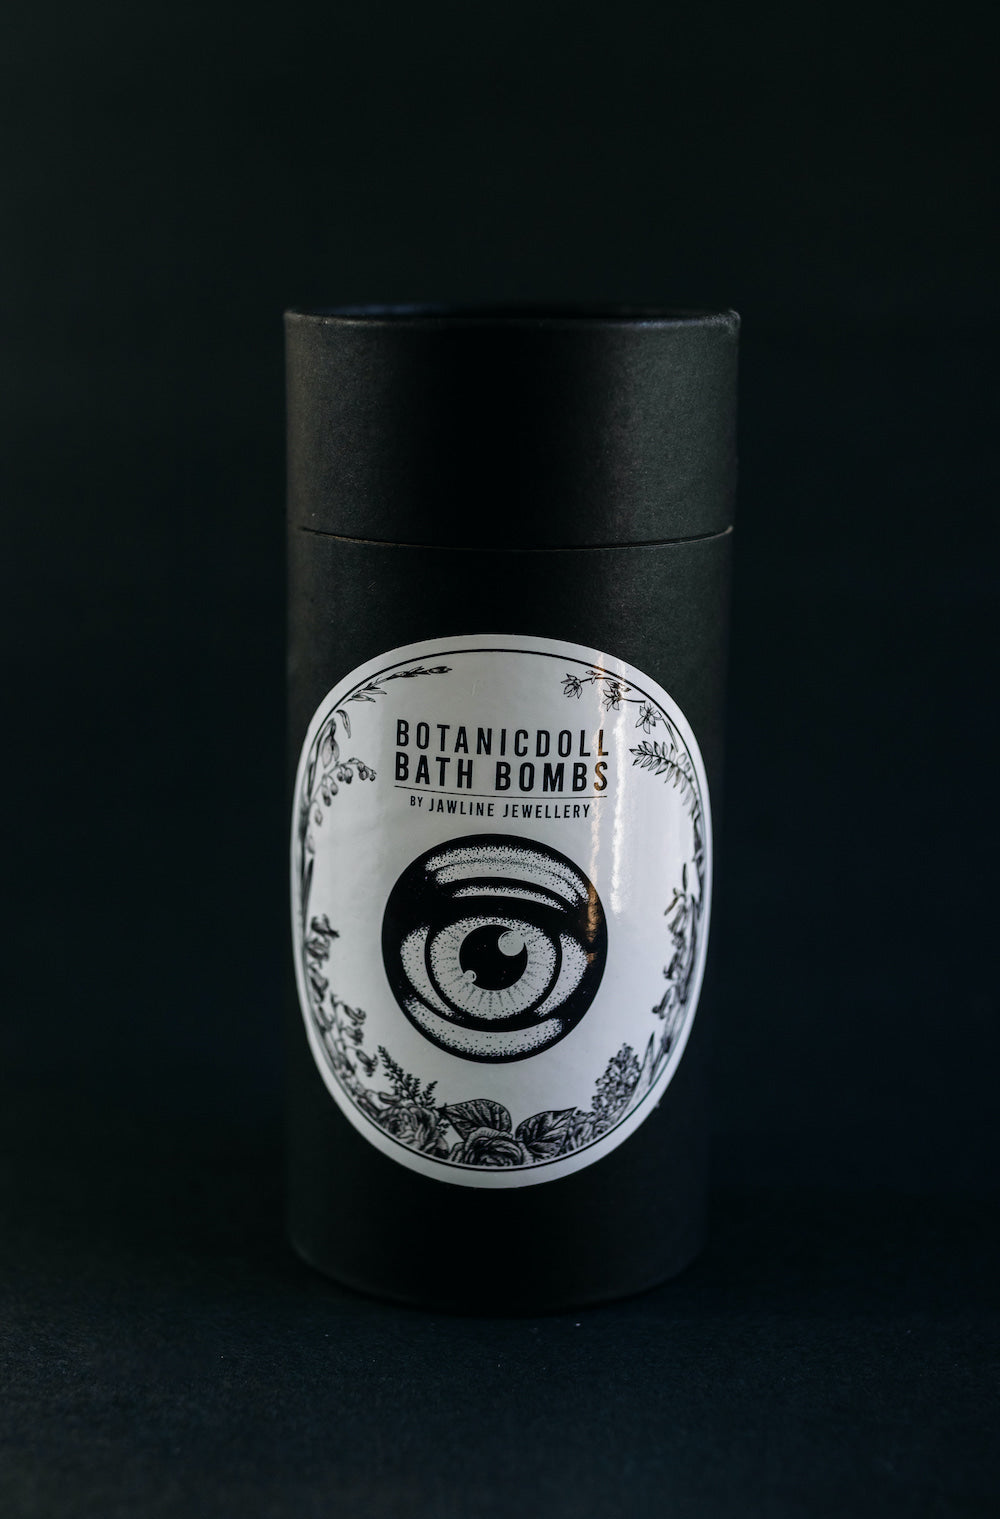 Jawline JewellerY Botanicdoll Bath bomb gift packaging - Black cardboard tube with white round label showing doll eye logo with plants, shown on black background